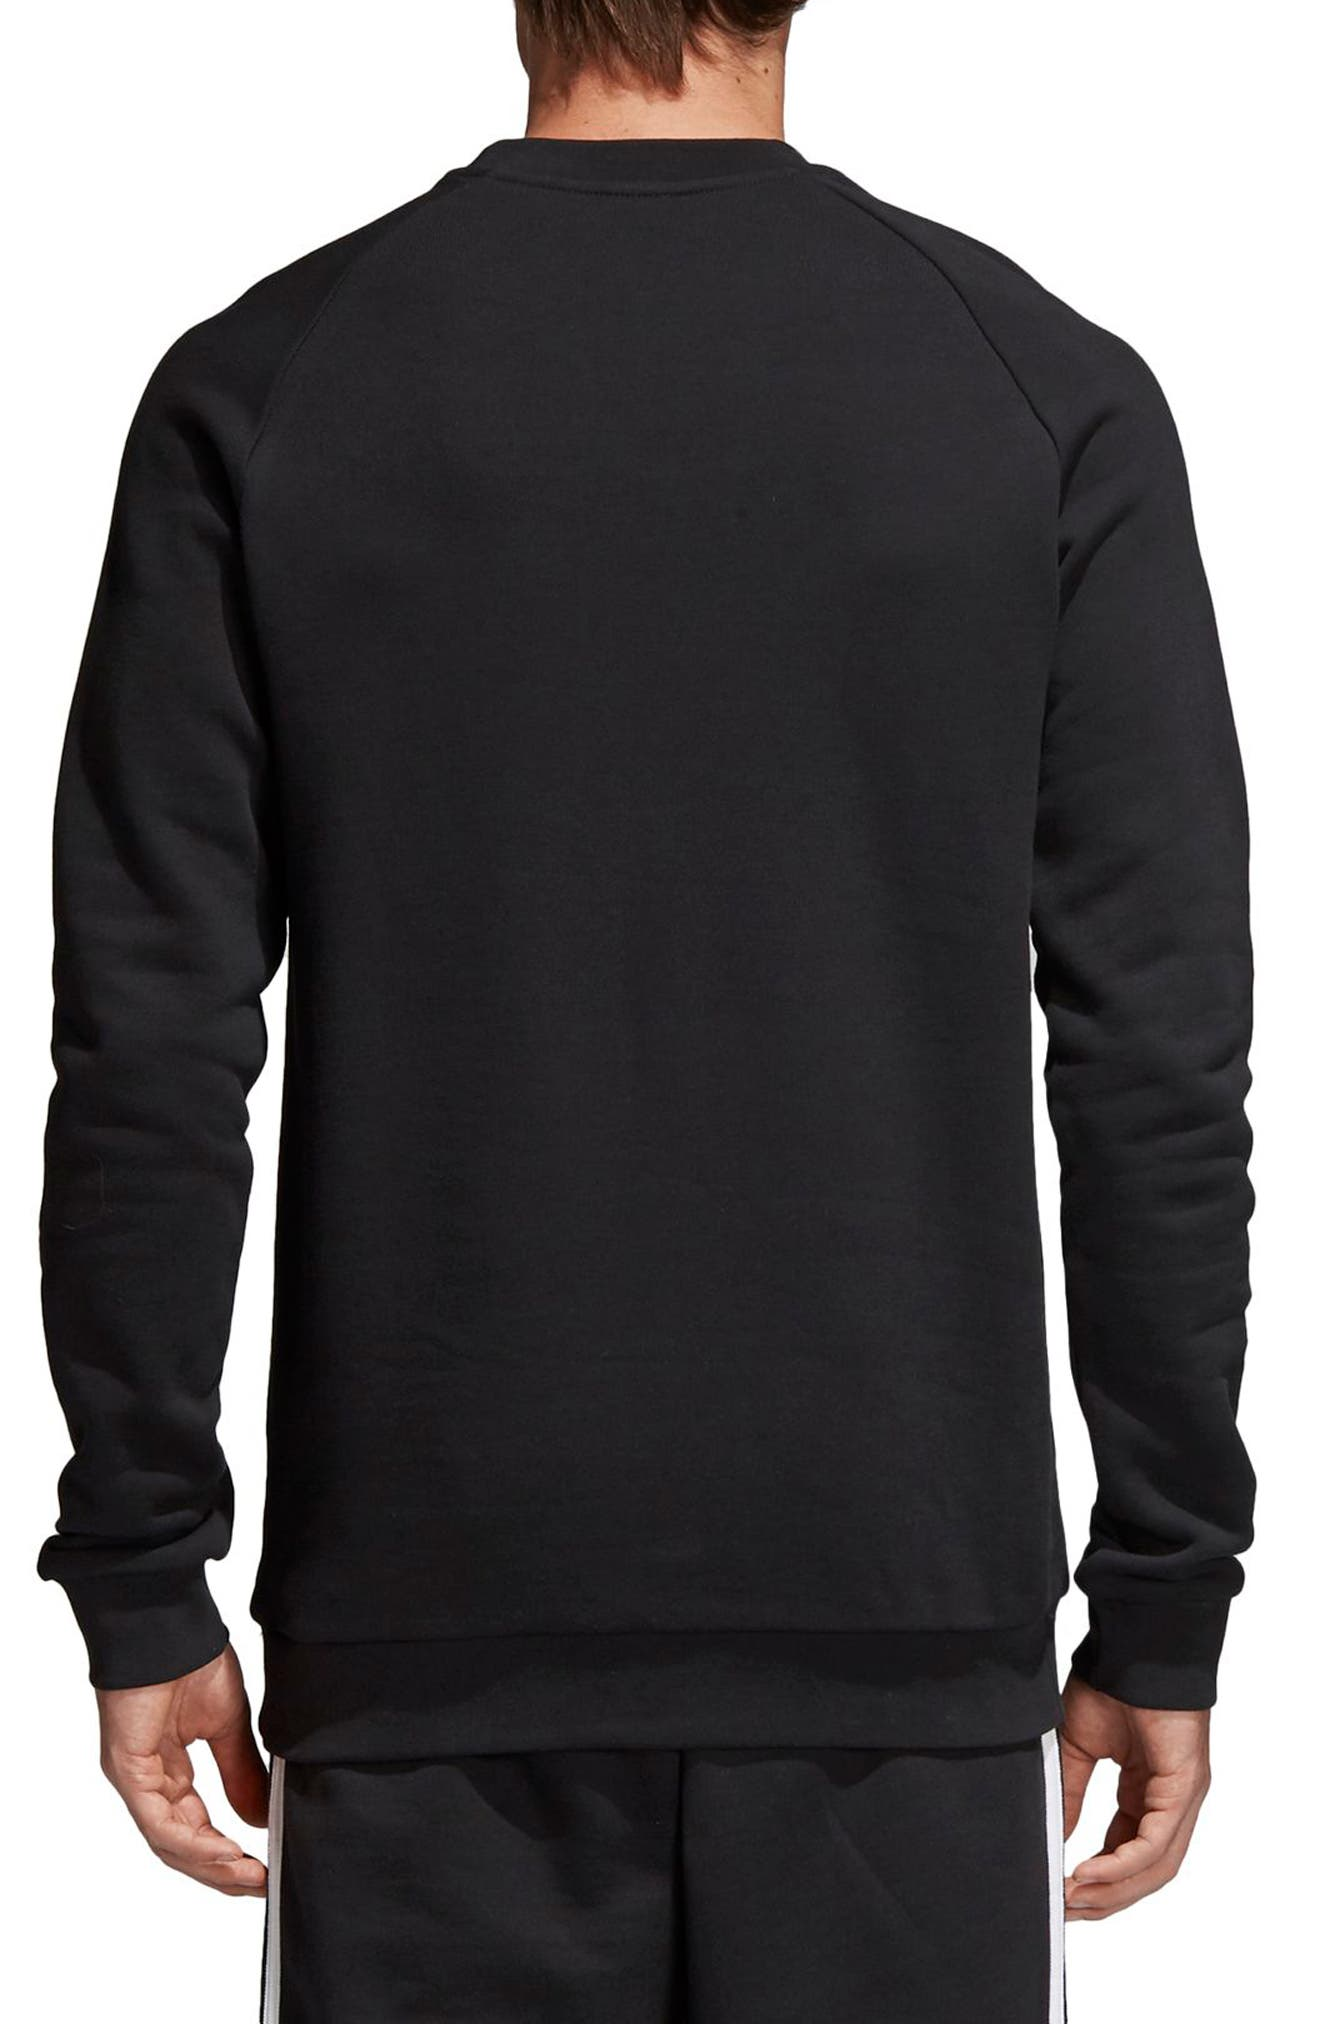 ADIDAS ORIGINALS, Trefoil Sweatshirt, Alternate thumbnail 2, color, BLACK